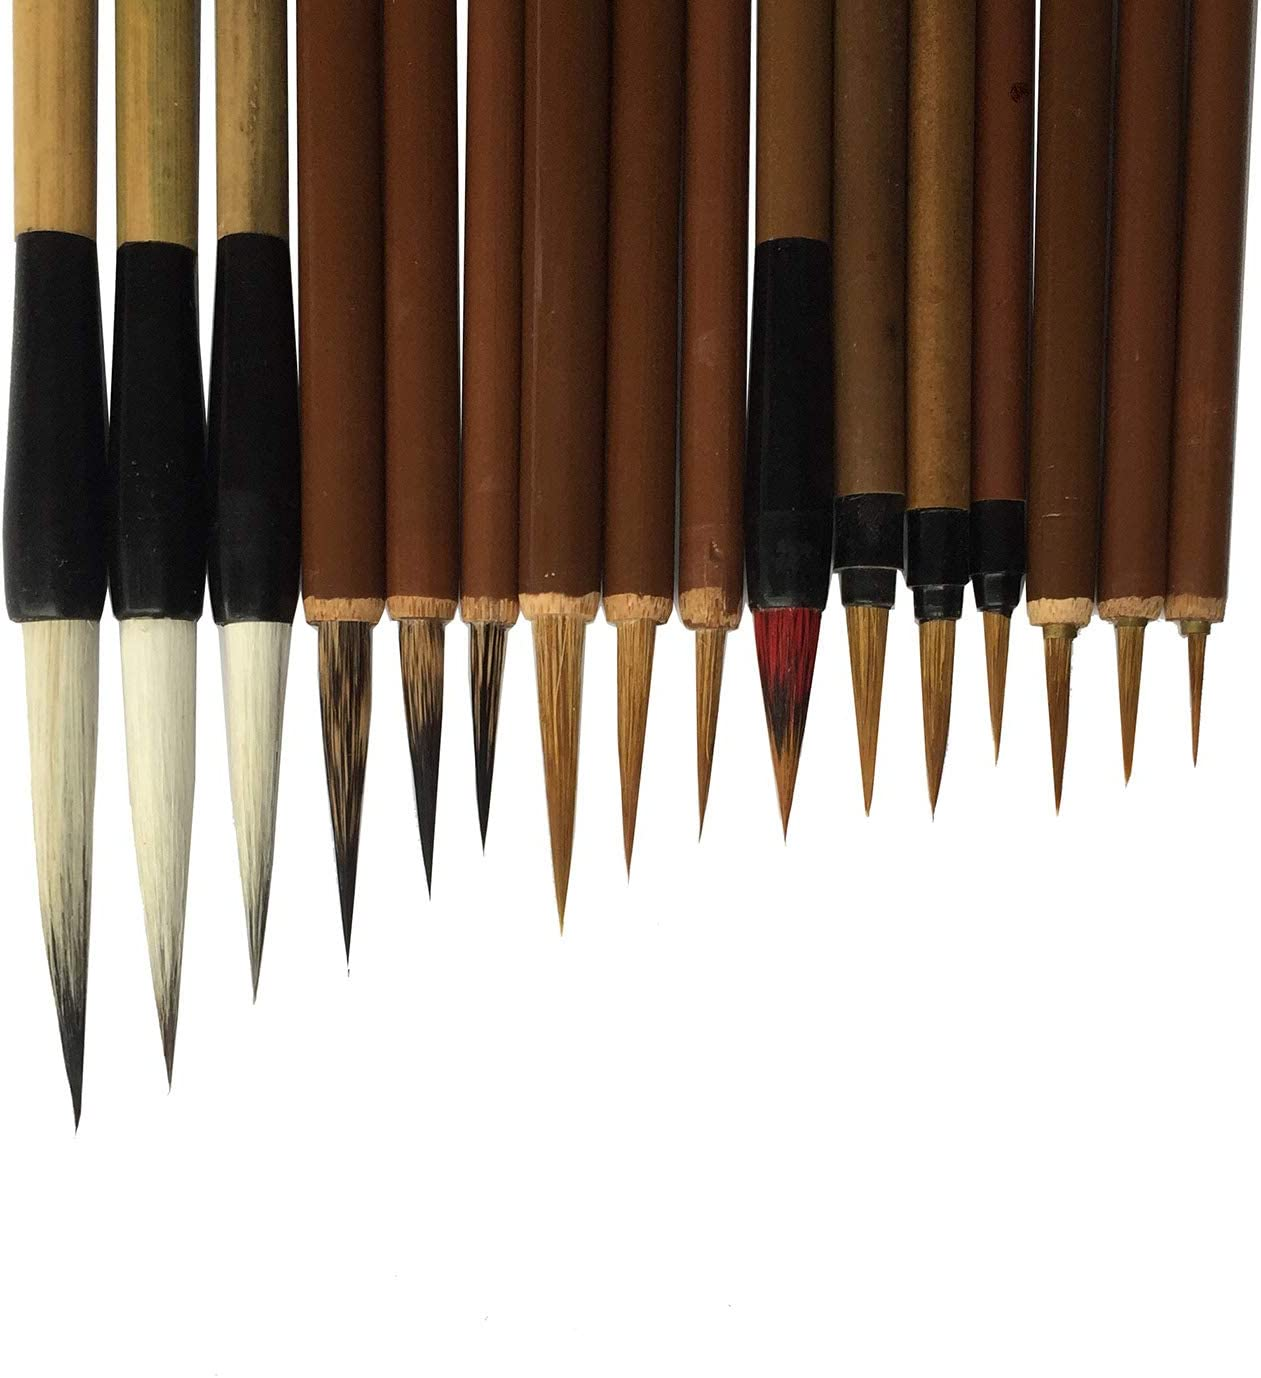 16-piece Set Chinese Writing Brush for Professional Calligrapy /& Painting